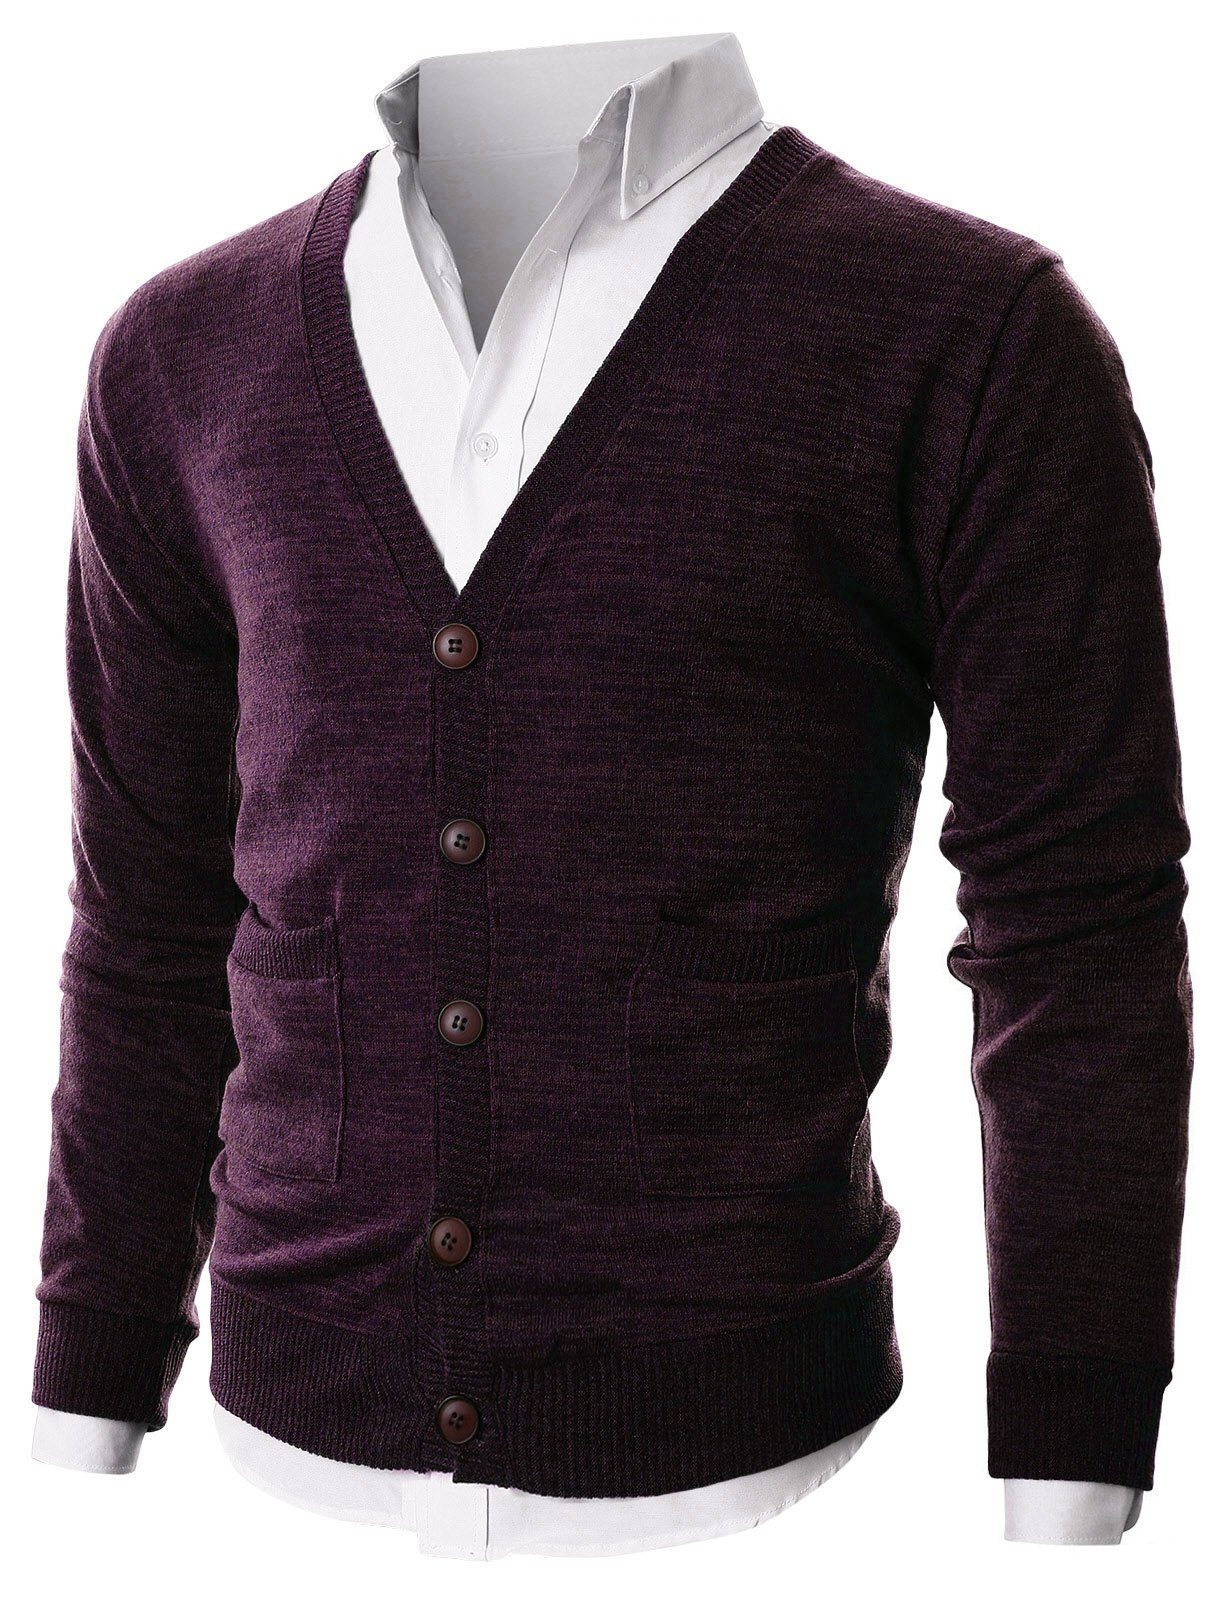 Ohoo Mens Slim Fit Ribbed Knit Cardigan With Pockets/DCC023-PURPLE-M